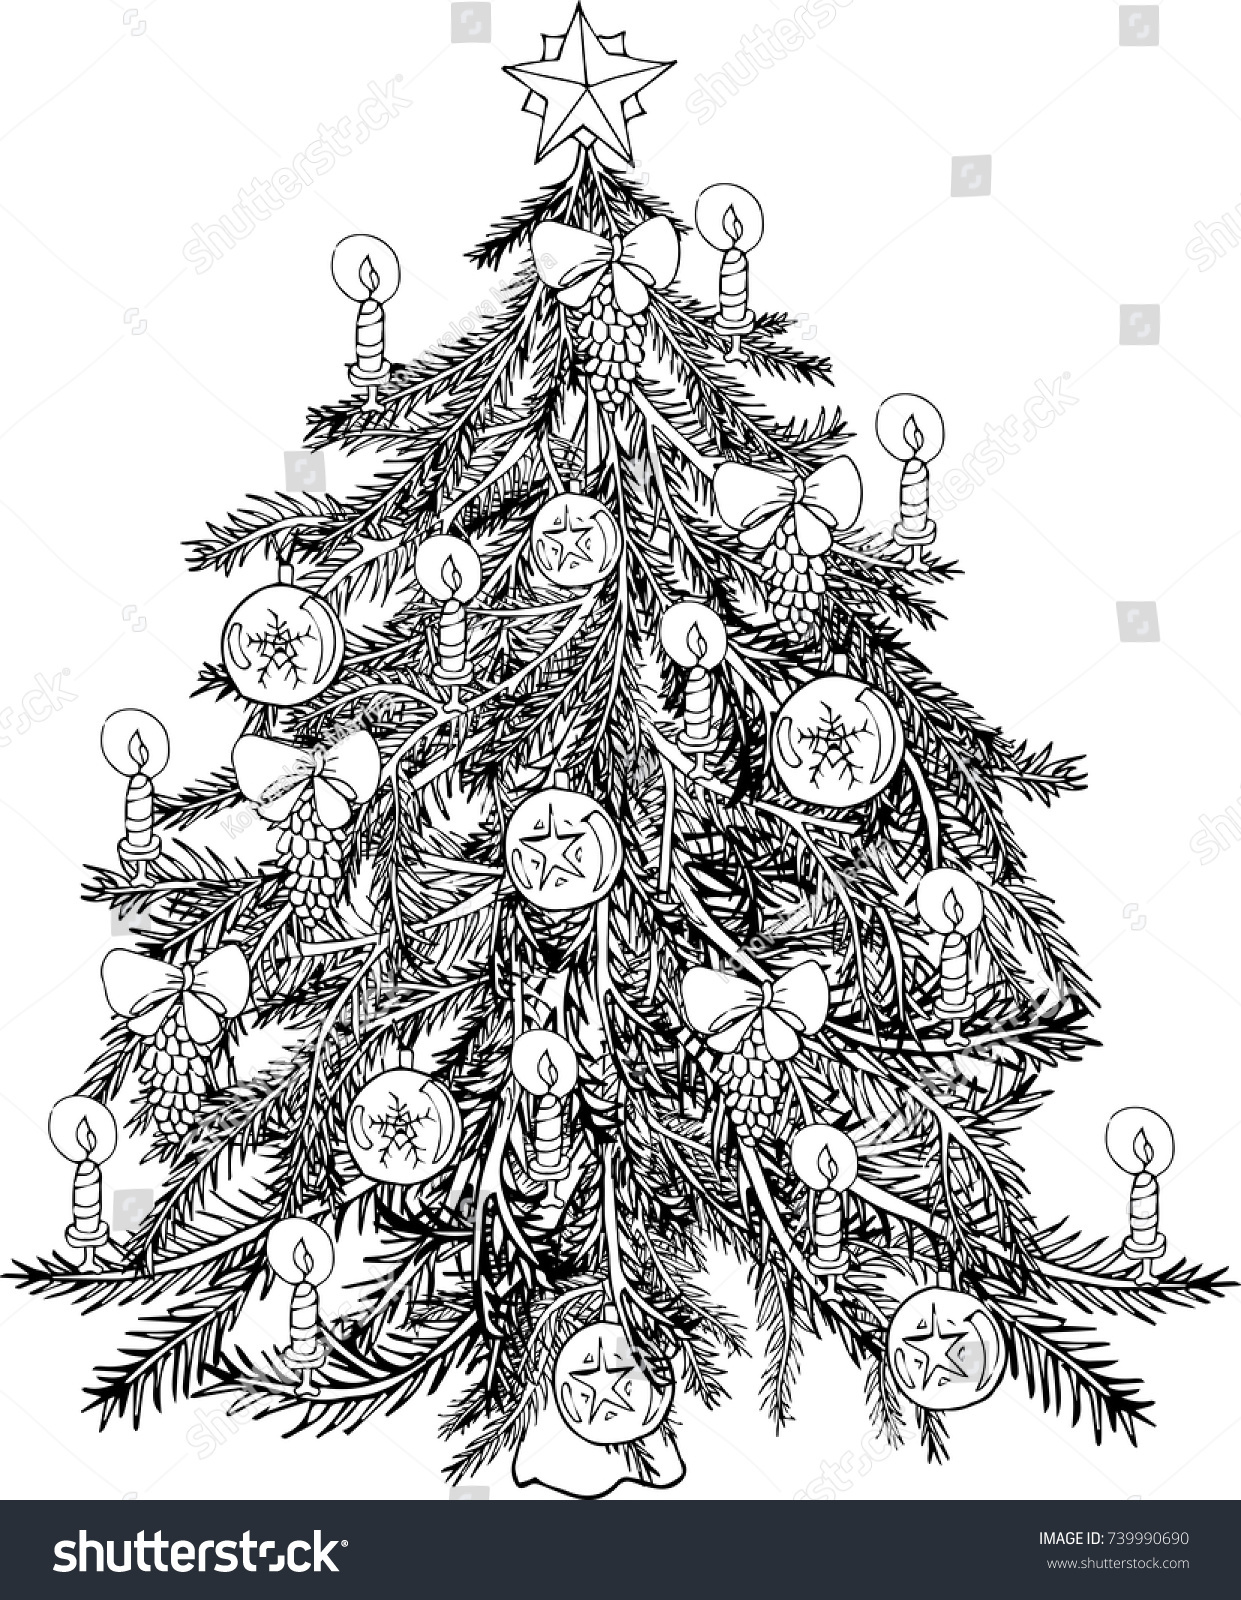 Coloring Pages Christmas Tree Decorated Stock Vector Royalty Free 739990690